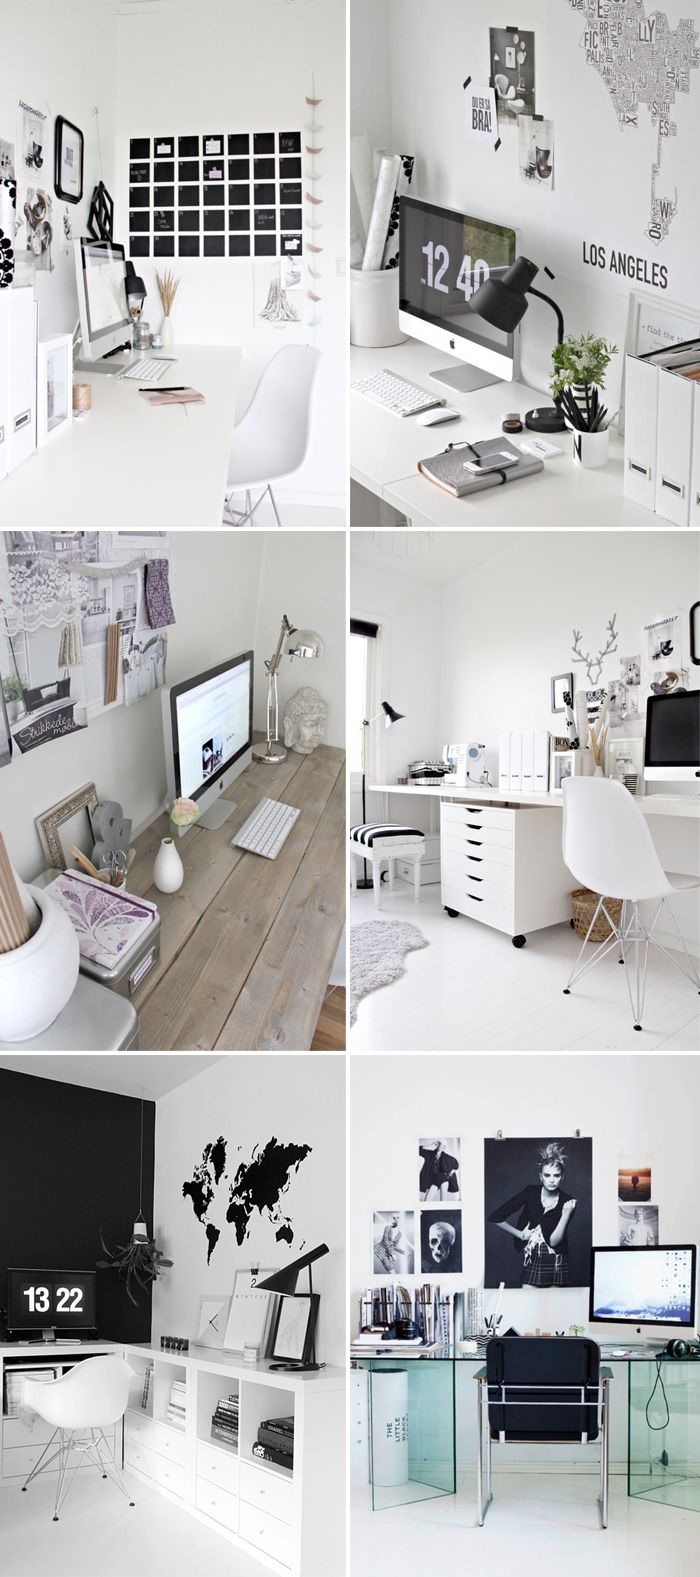 After Style Comes Fashion: Interior - office inspiration